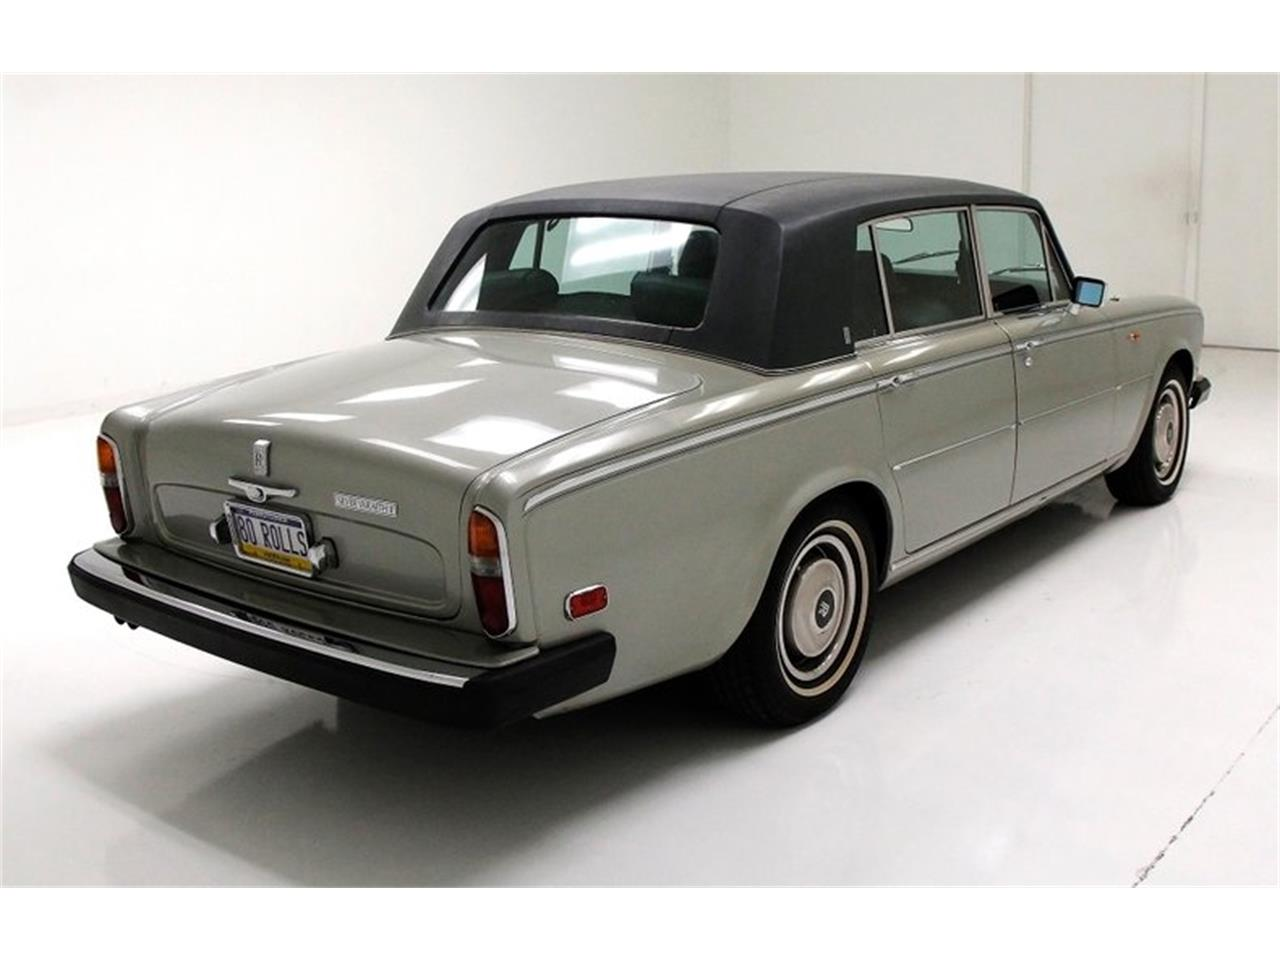 1980 Rolls-Royce Silver Wraith for sale in Morgantown, PA – photo 6